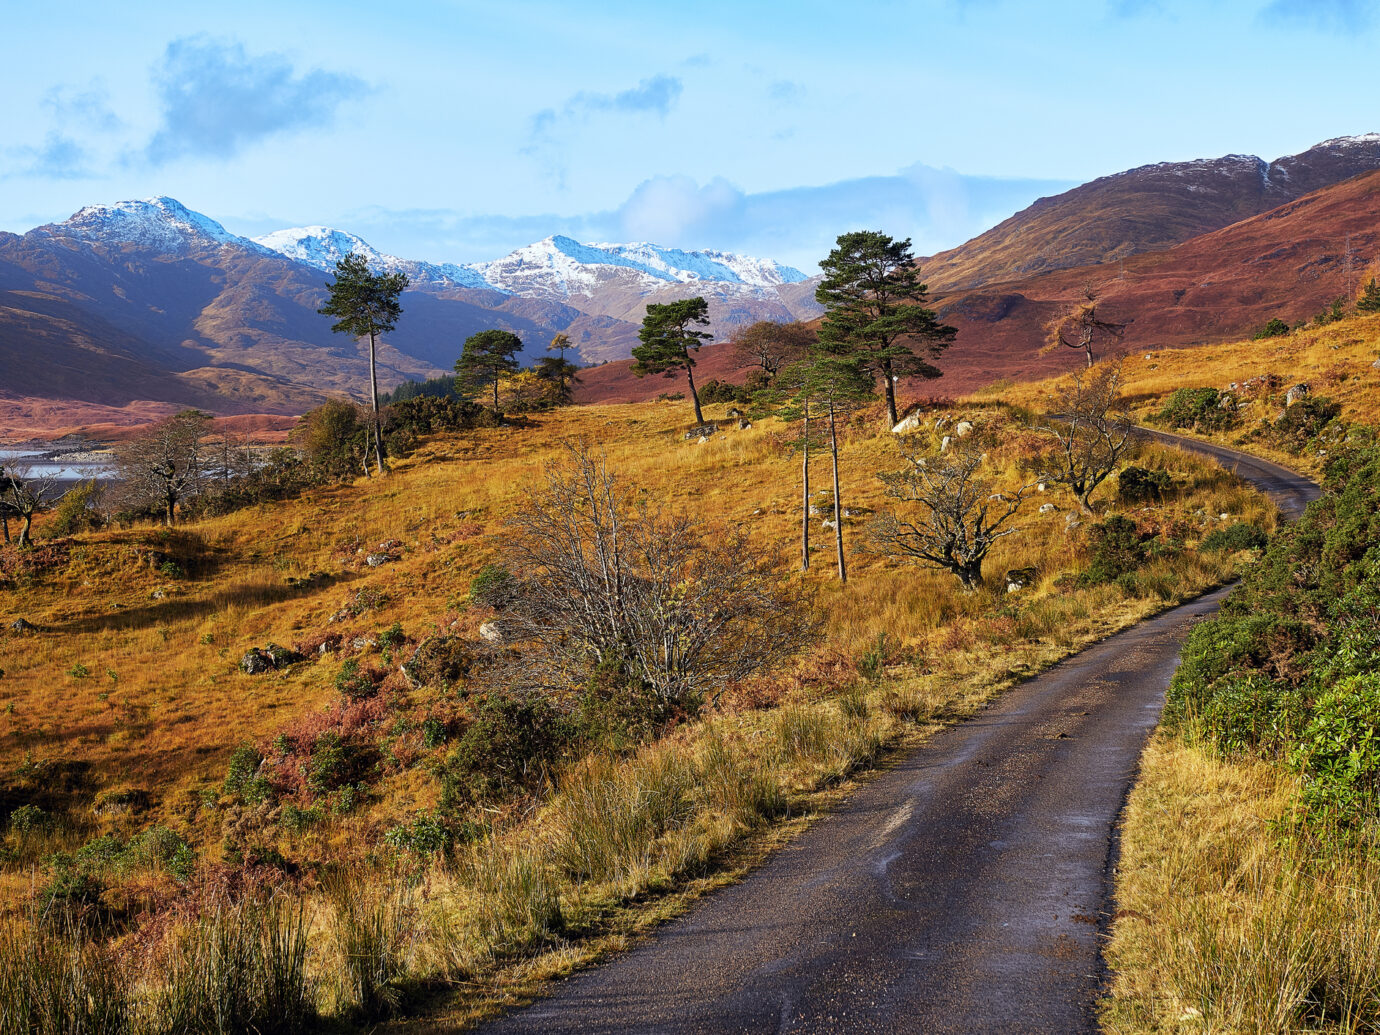 Loch Quoich in the Western Highlands of Scotland with its autumn colour and first snows.